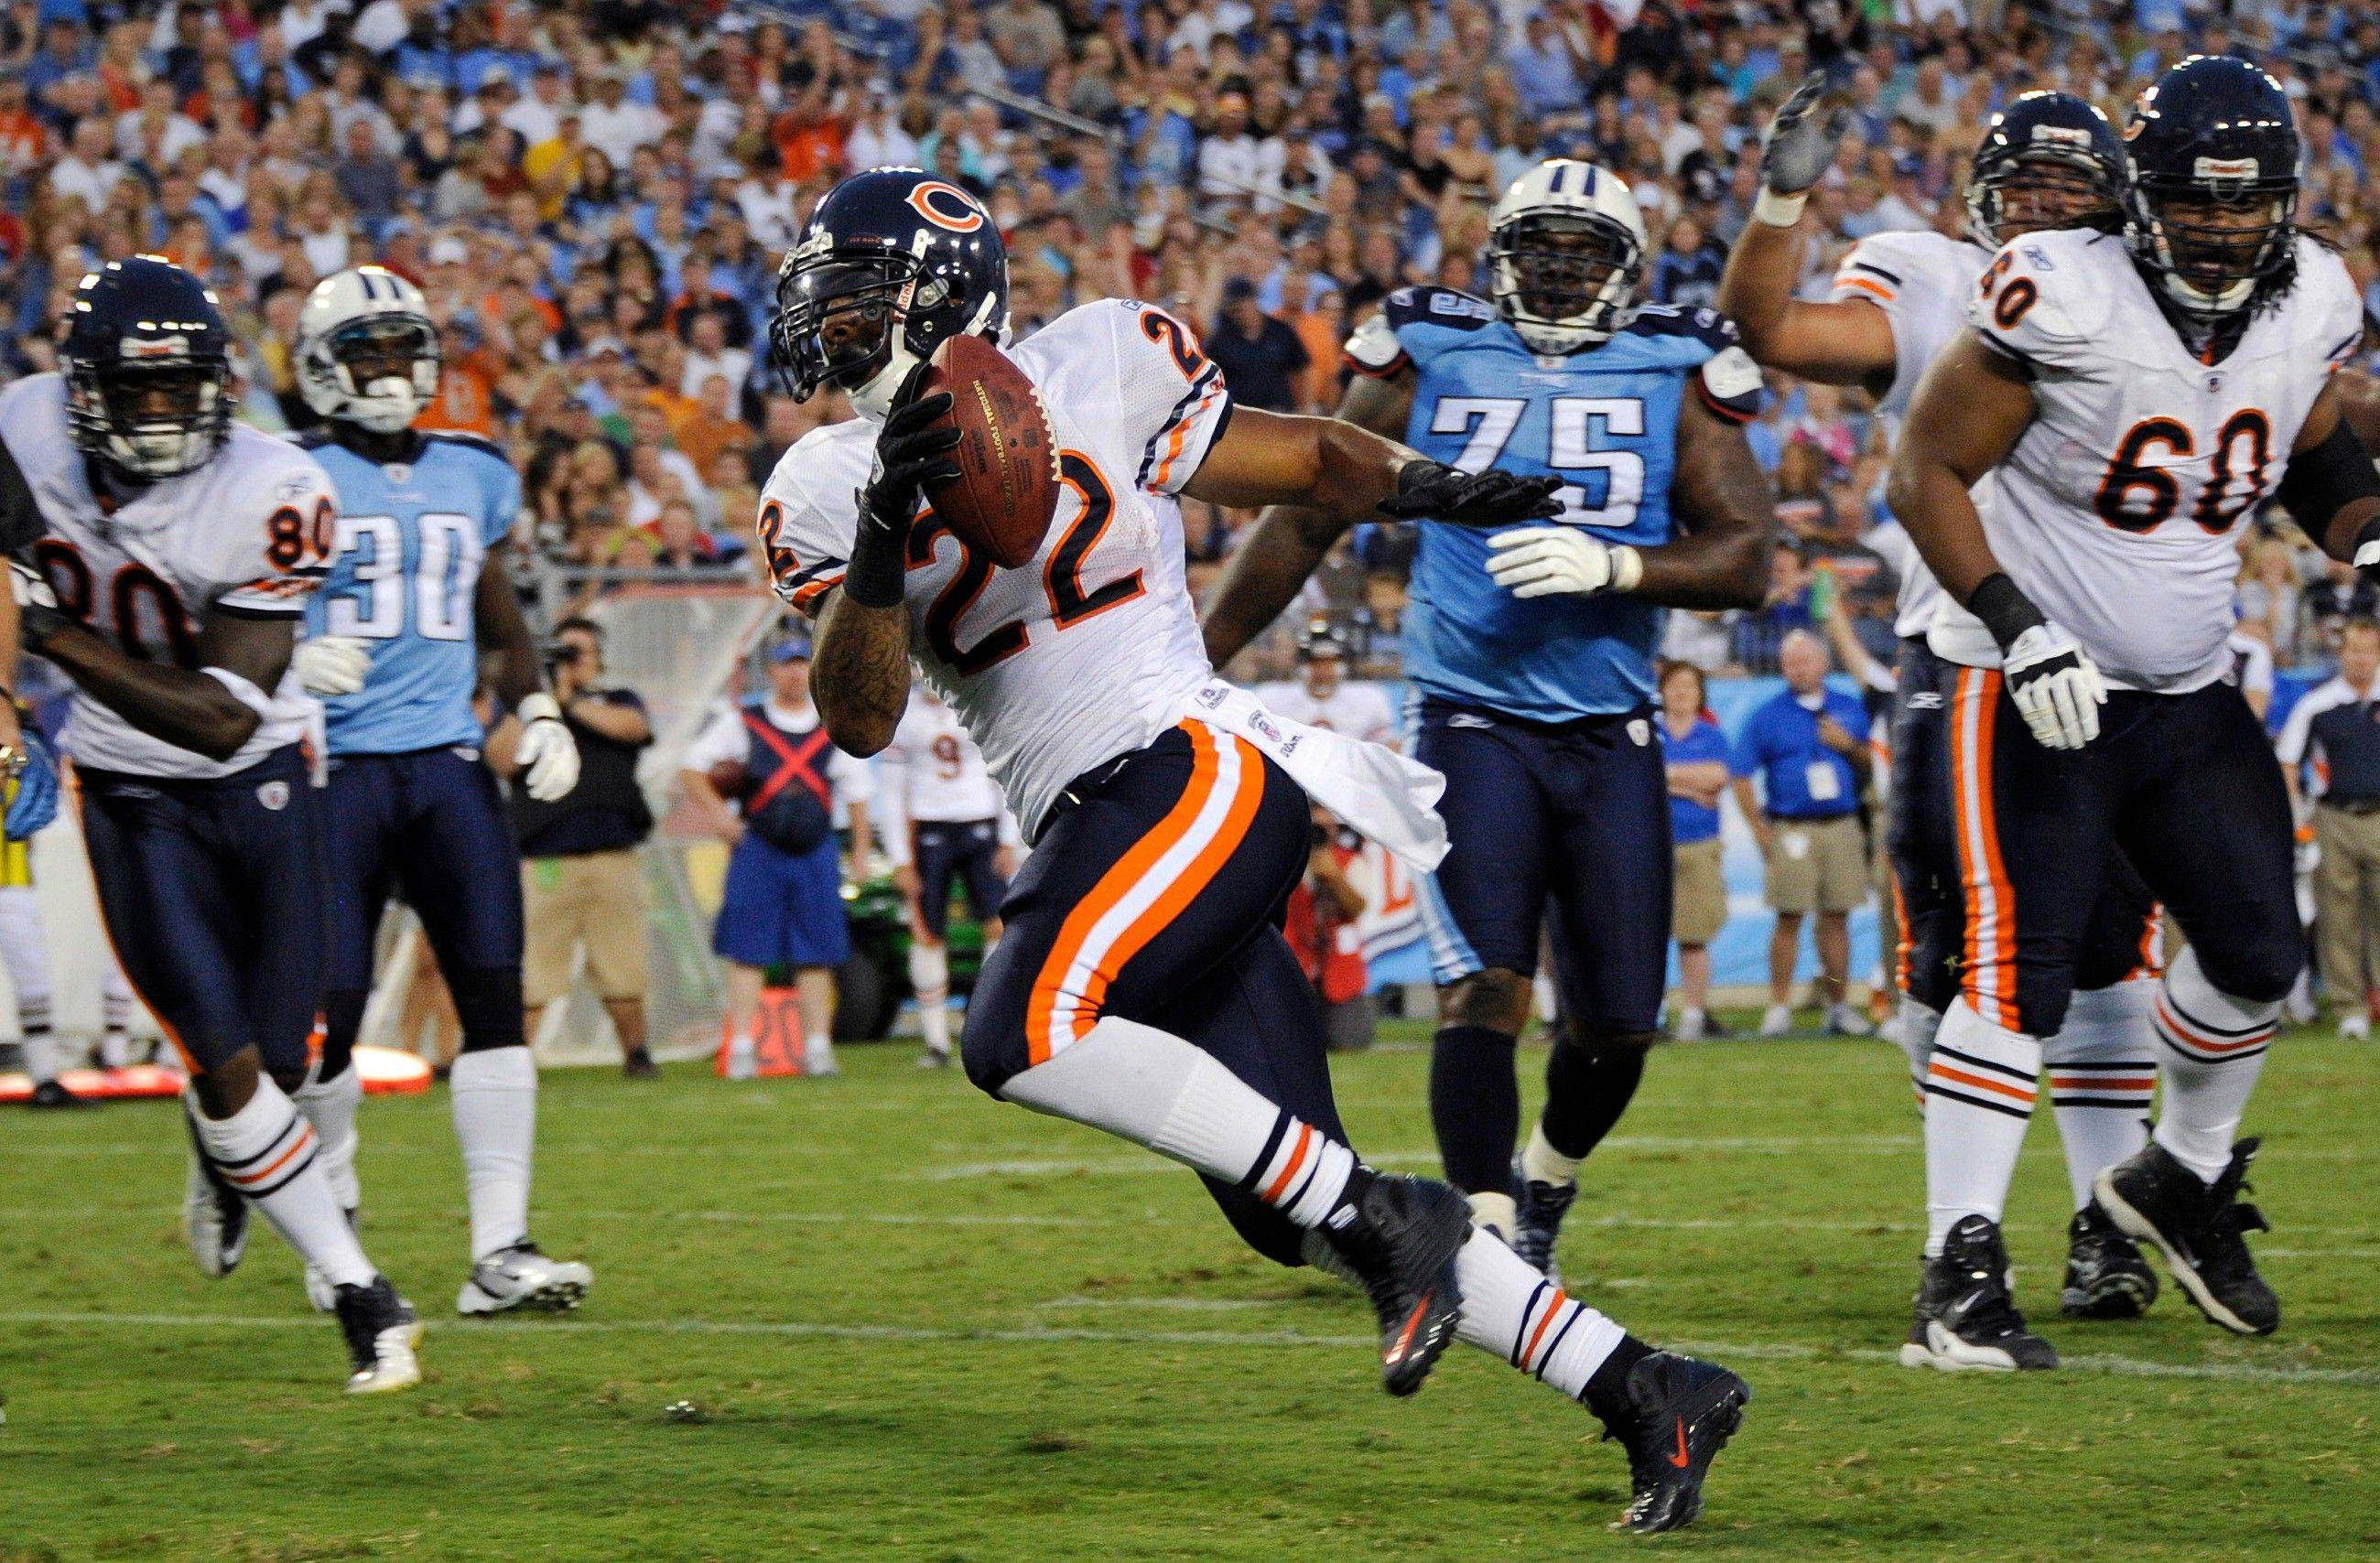 Chicago Bears running back Matt Forte (22) scores a touchdown on a 3-yard run against the Tennessee Titans in the first quarter of an NFL football preseason game Saturday, Aug. 27, 2011, in Nashville, Tenn.